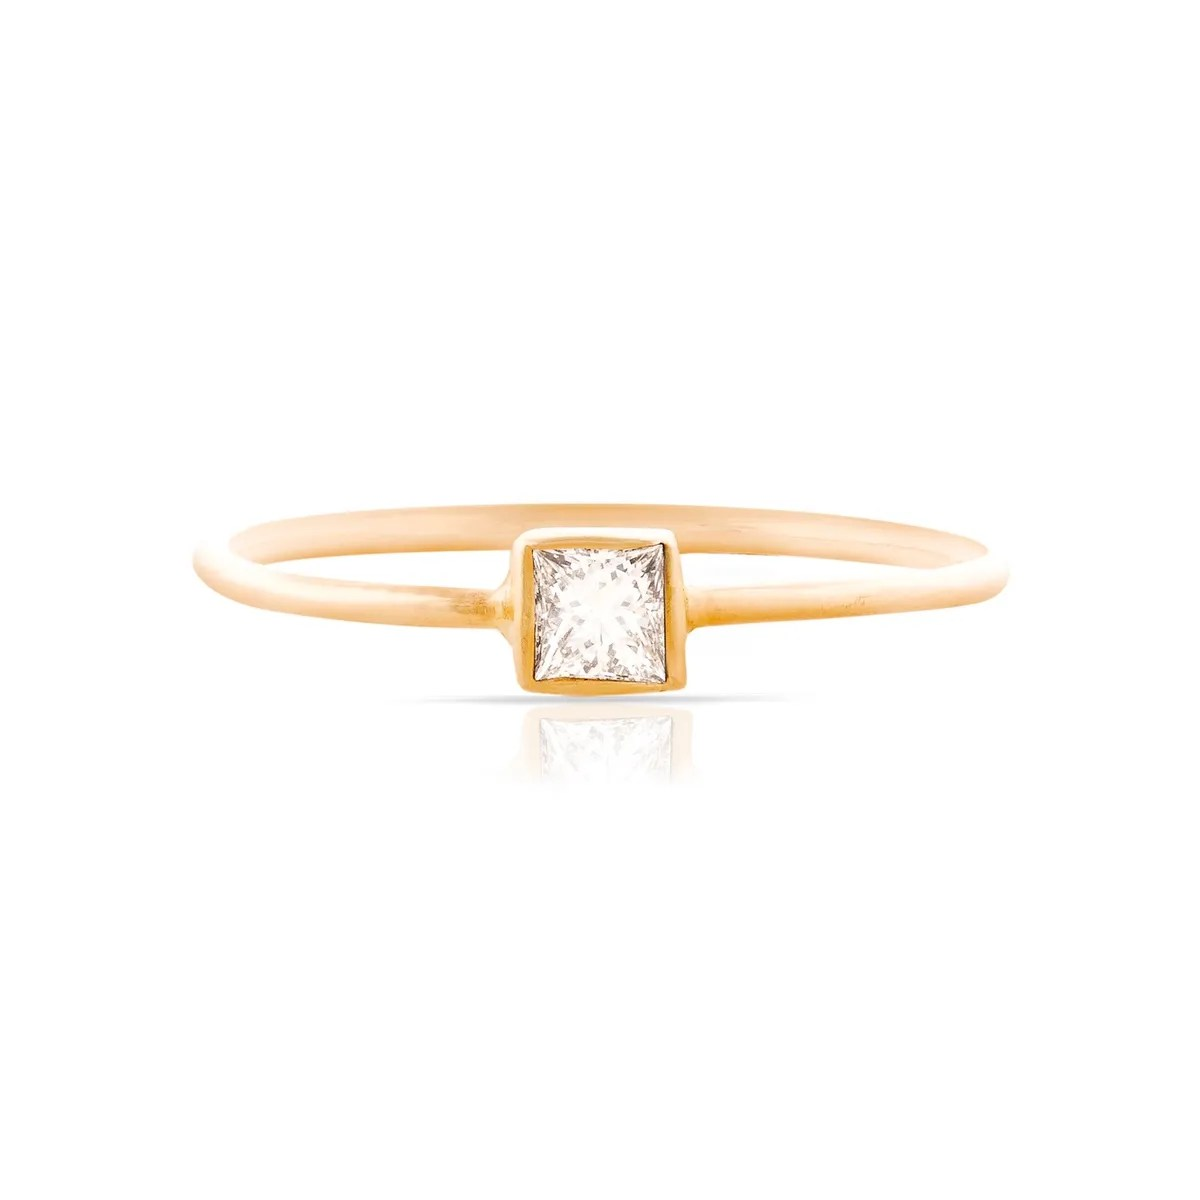 best unexpectd engagement ring ideas proposals wedding ring ideas 25 Engagement Ring Ideas That She s Not Expecting